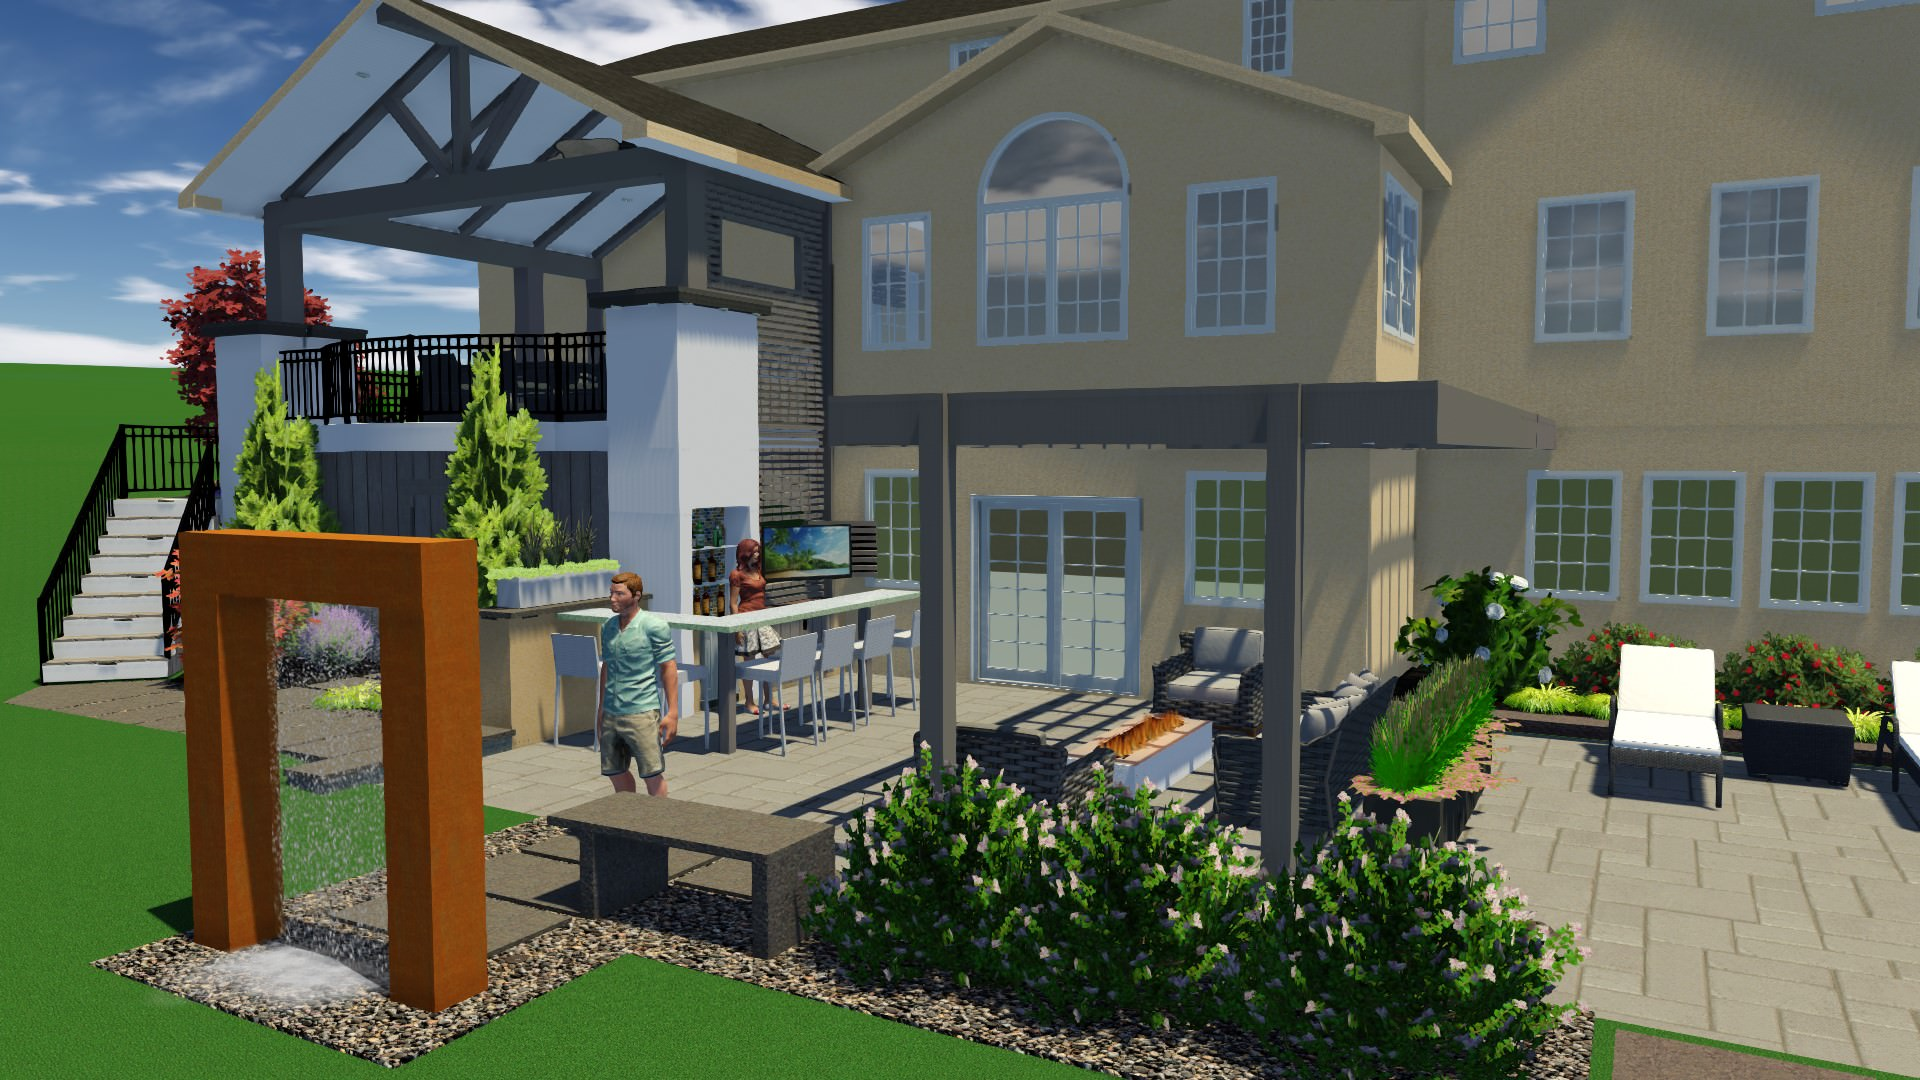 Careful planning went into incorporating all the homeowner's wishlist items into a beautiful and functional layout!